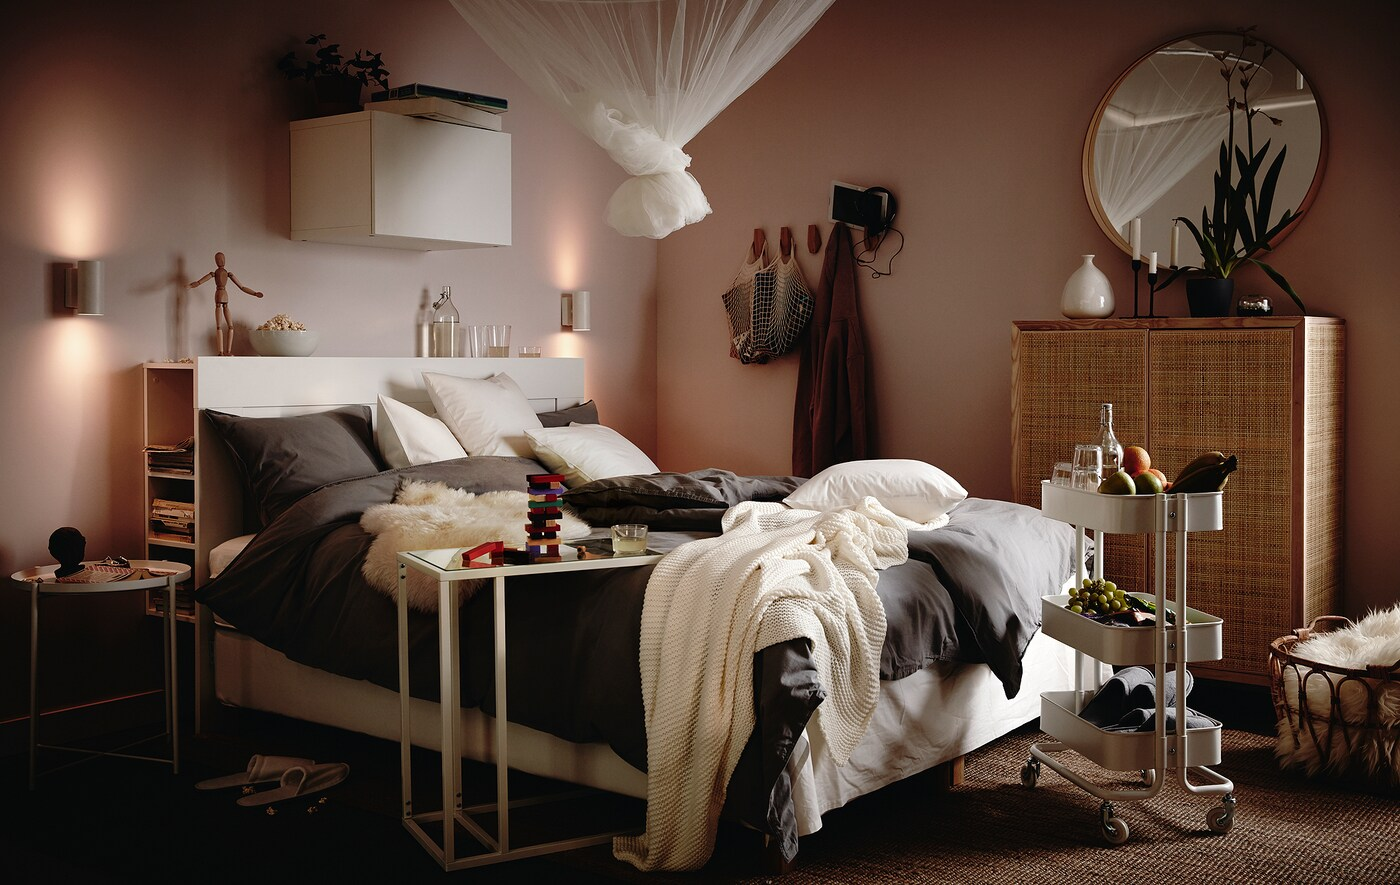 Bed laden with fluffy bedding, cushions and throws, trolley with snacks and drinks beside it, and a net in a knot hanging above.